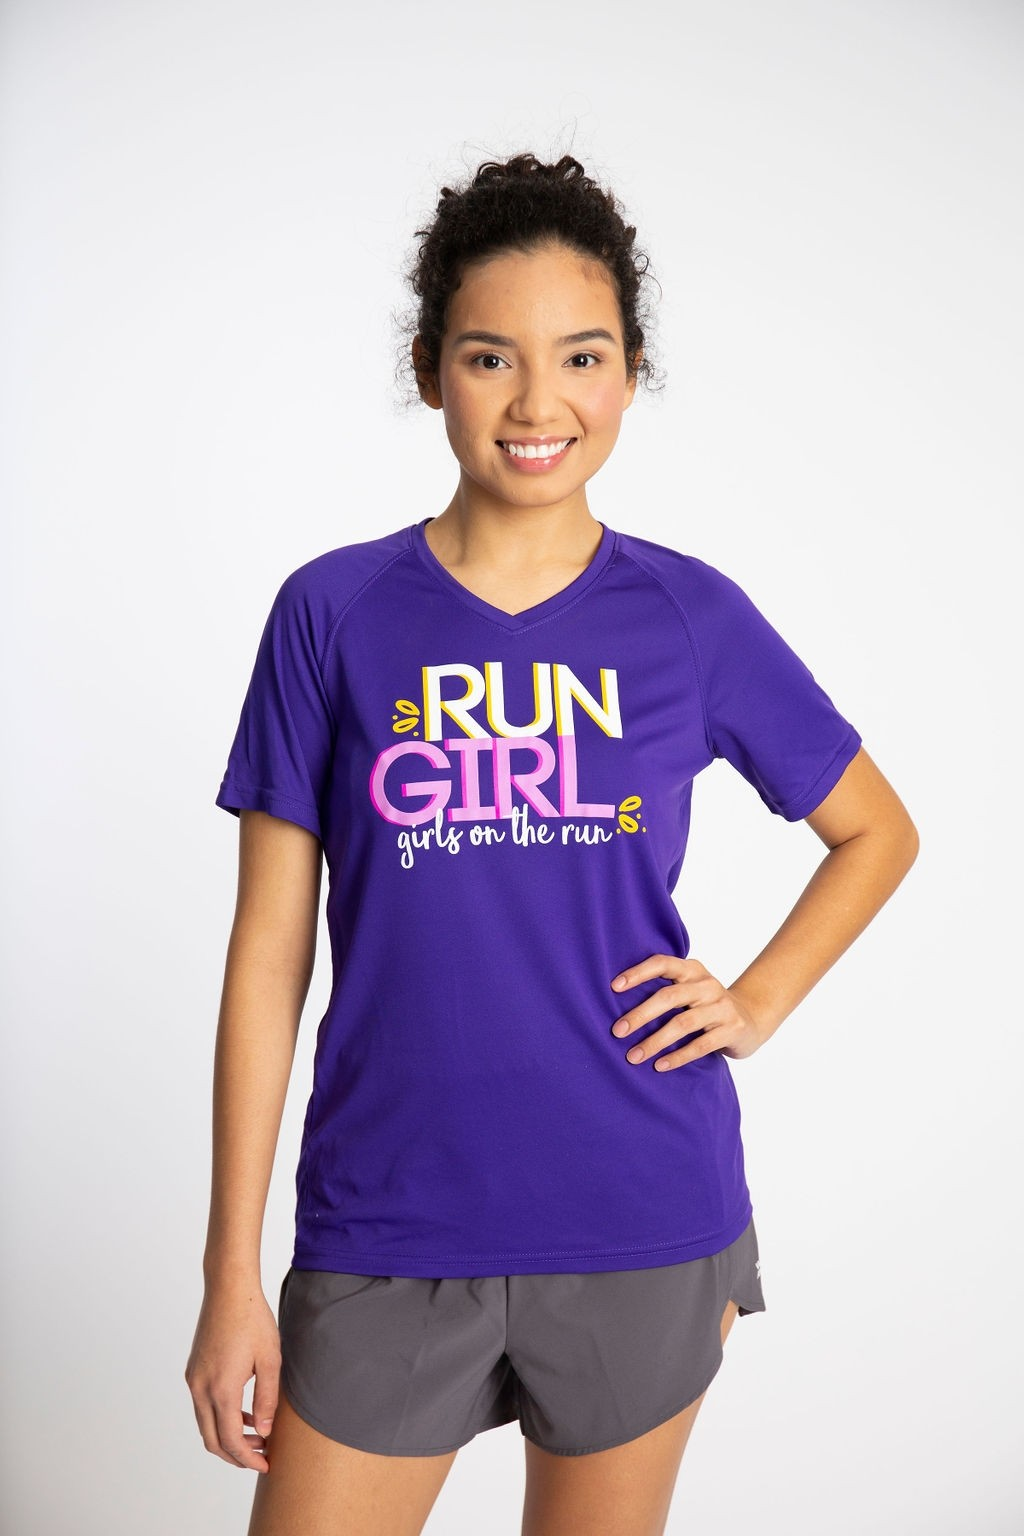 Run Girl Shirt